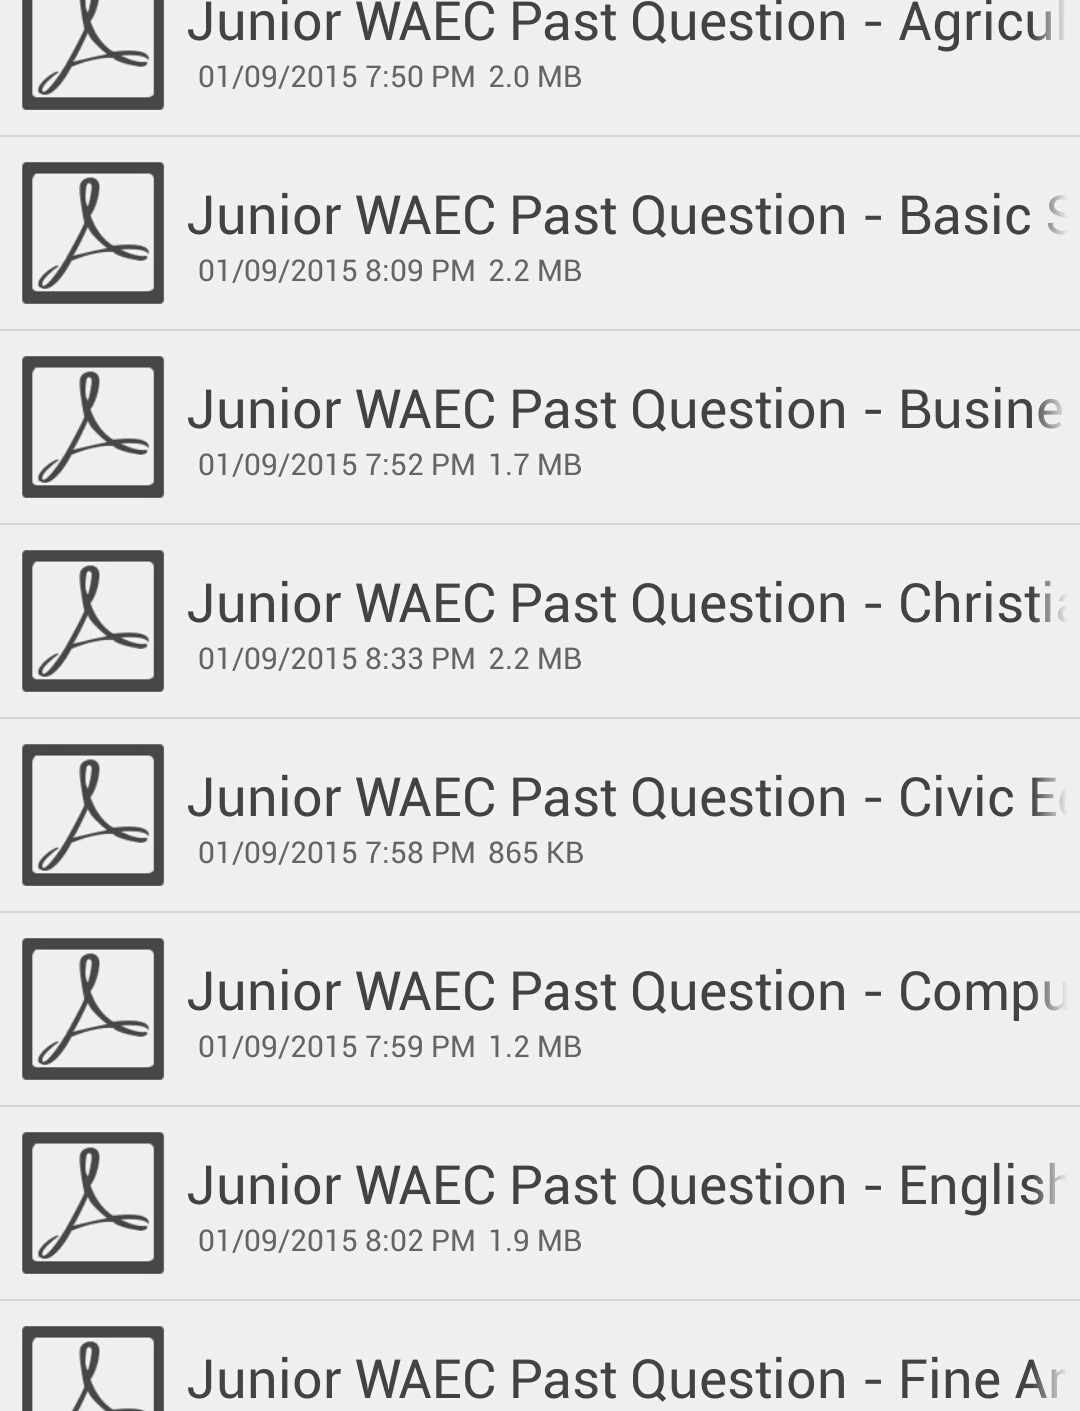 Junior WAEC past questions for all the subjects - FREE PDF download